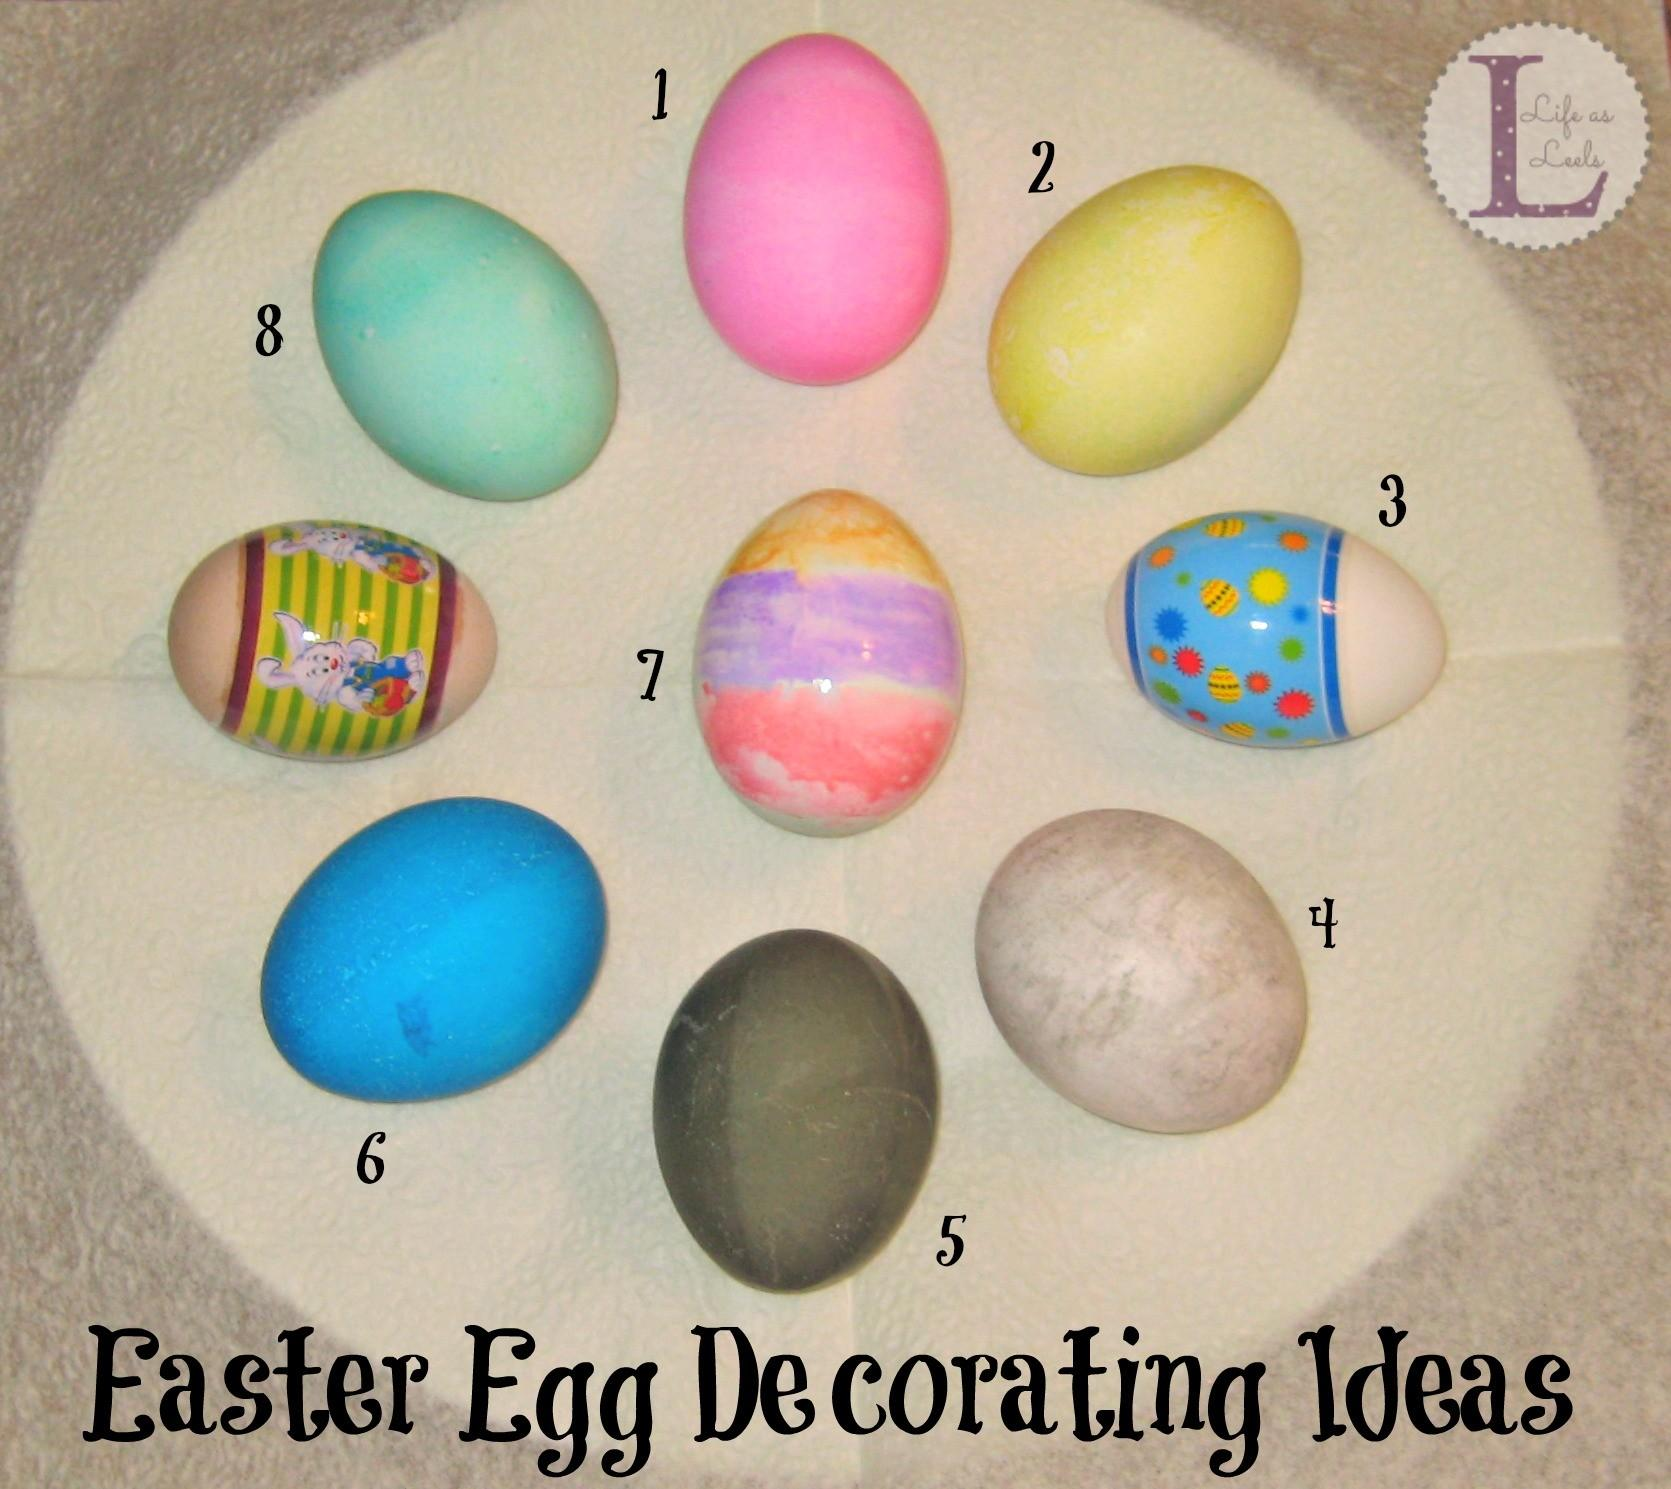 Easter Egg Decorating Ideas Life Leels